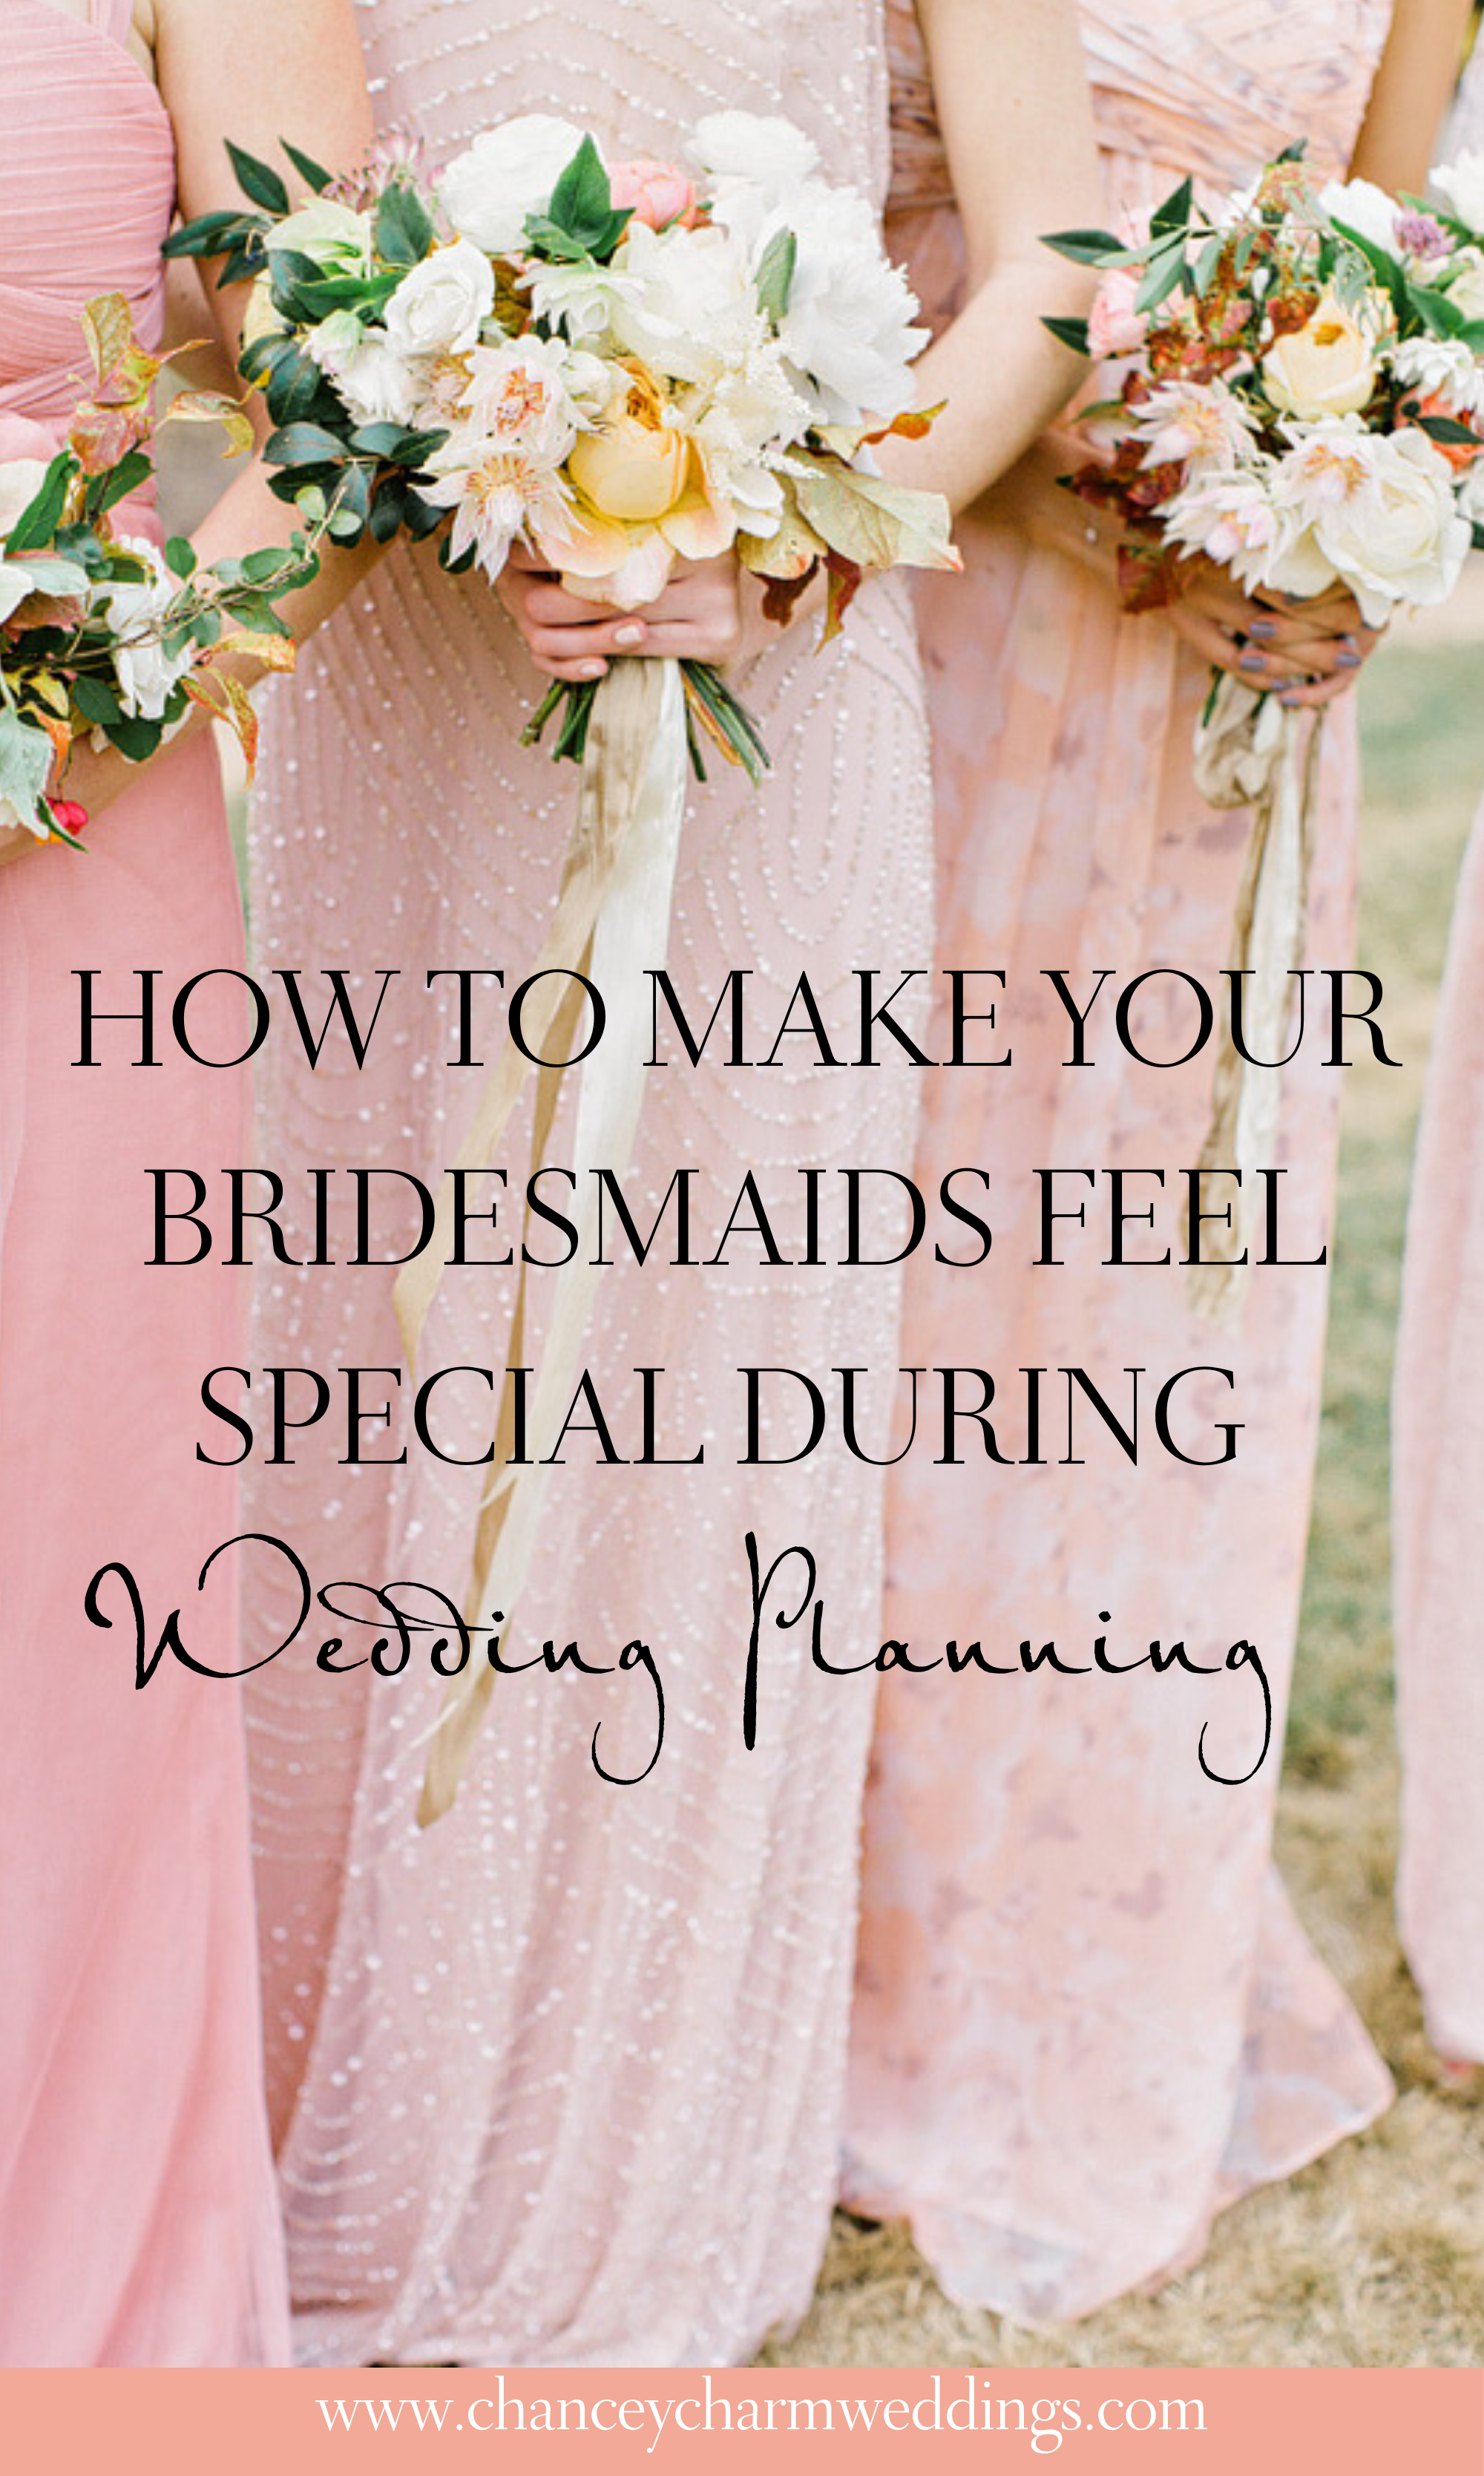 How To Make Your Bridesmaids Feel Special During Wedding